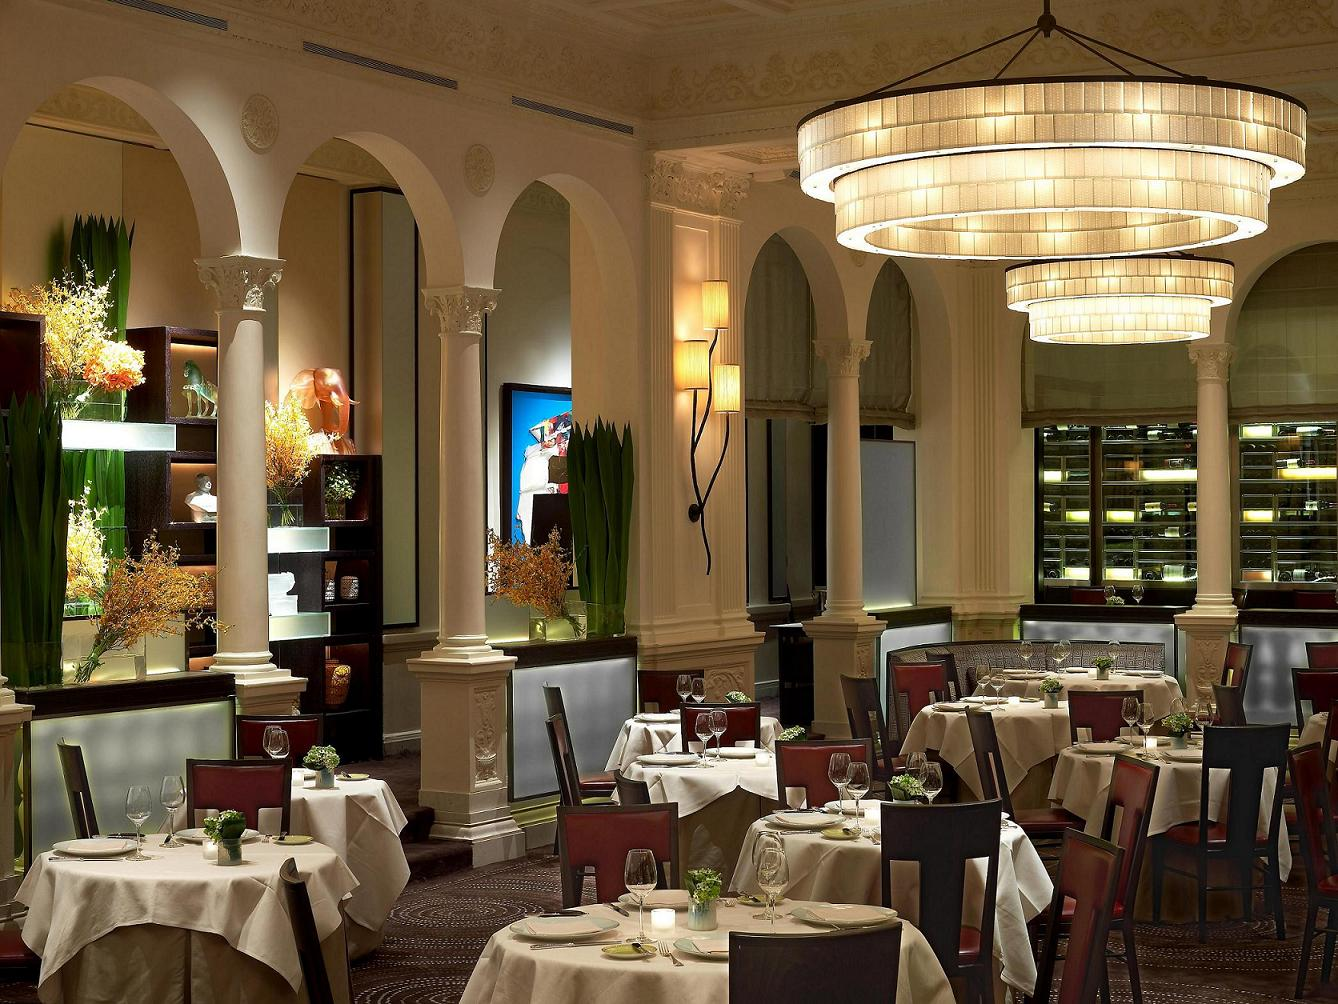 Top 10 restaurants in new york city legatto lifestyle for 65th street salon